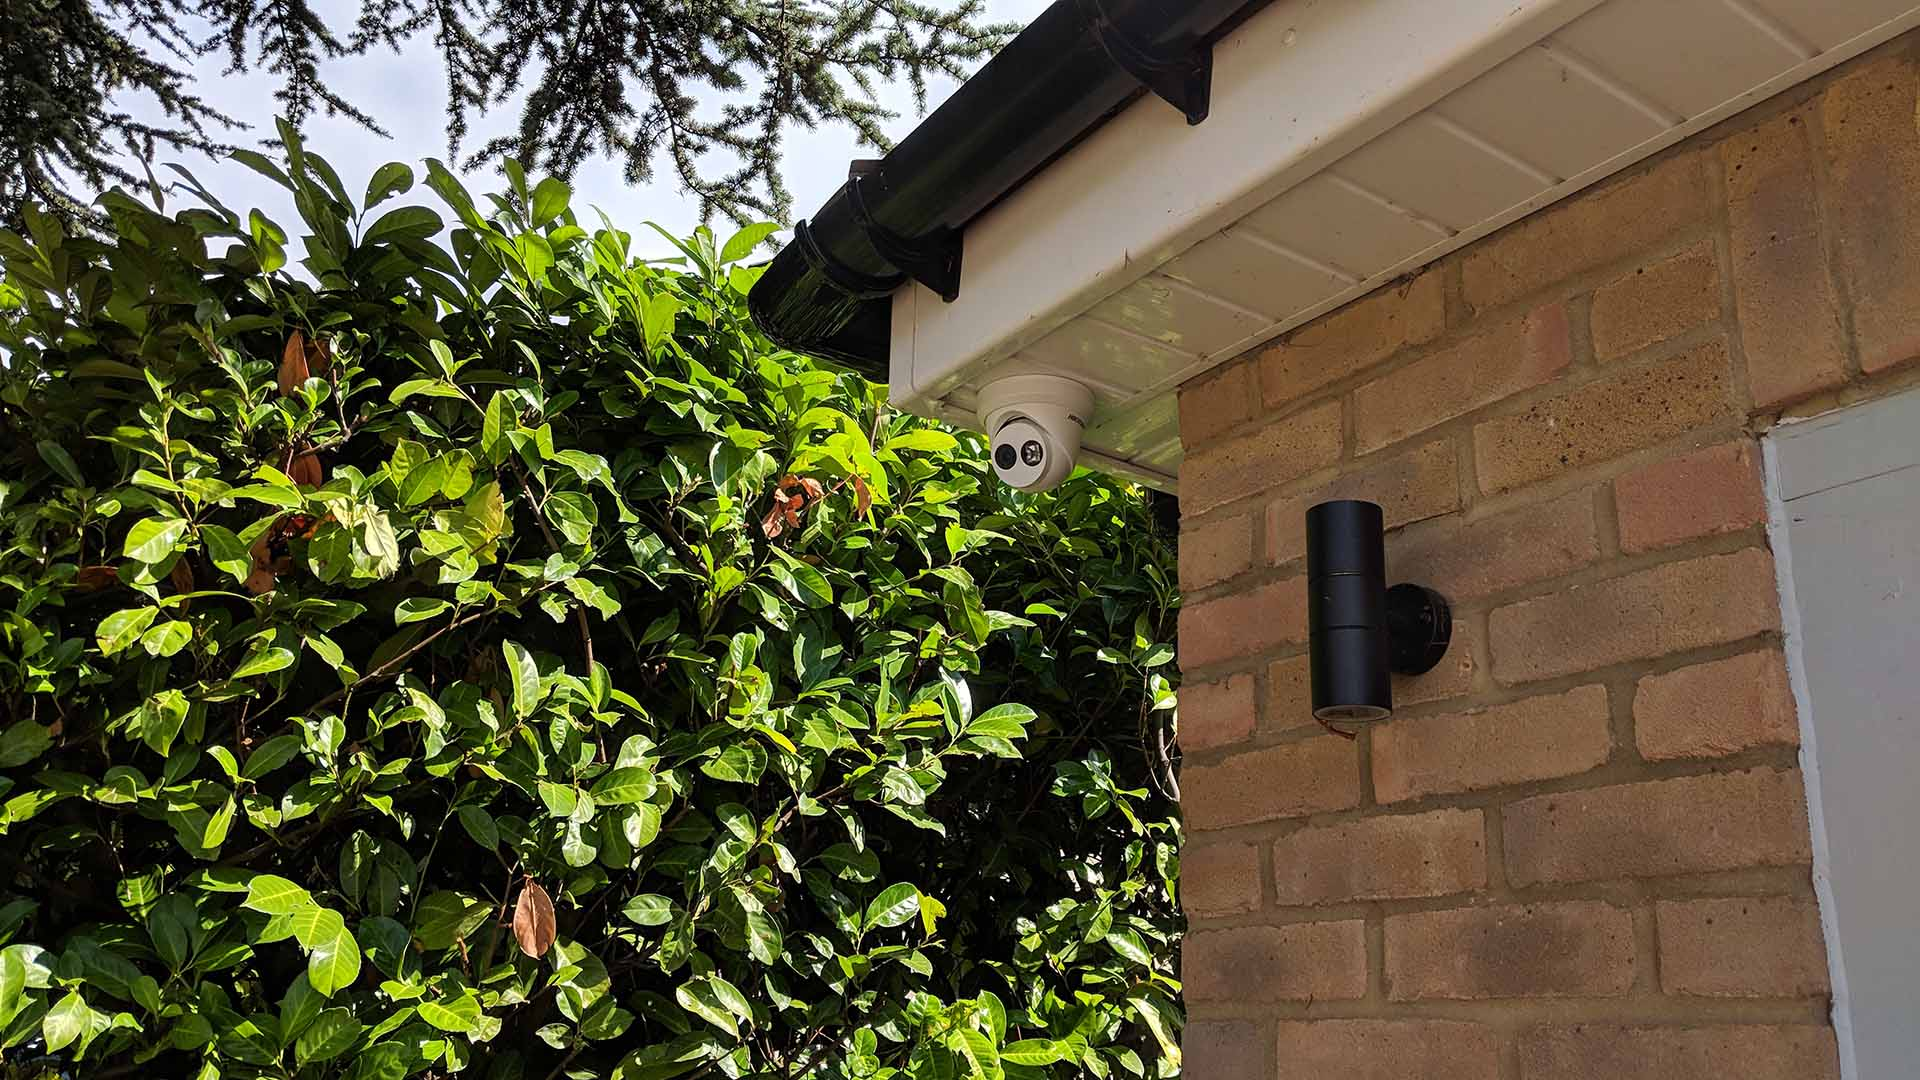 CCTV Installation in Hutton Mount, Brentwood